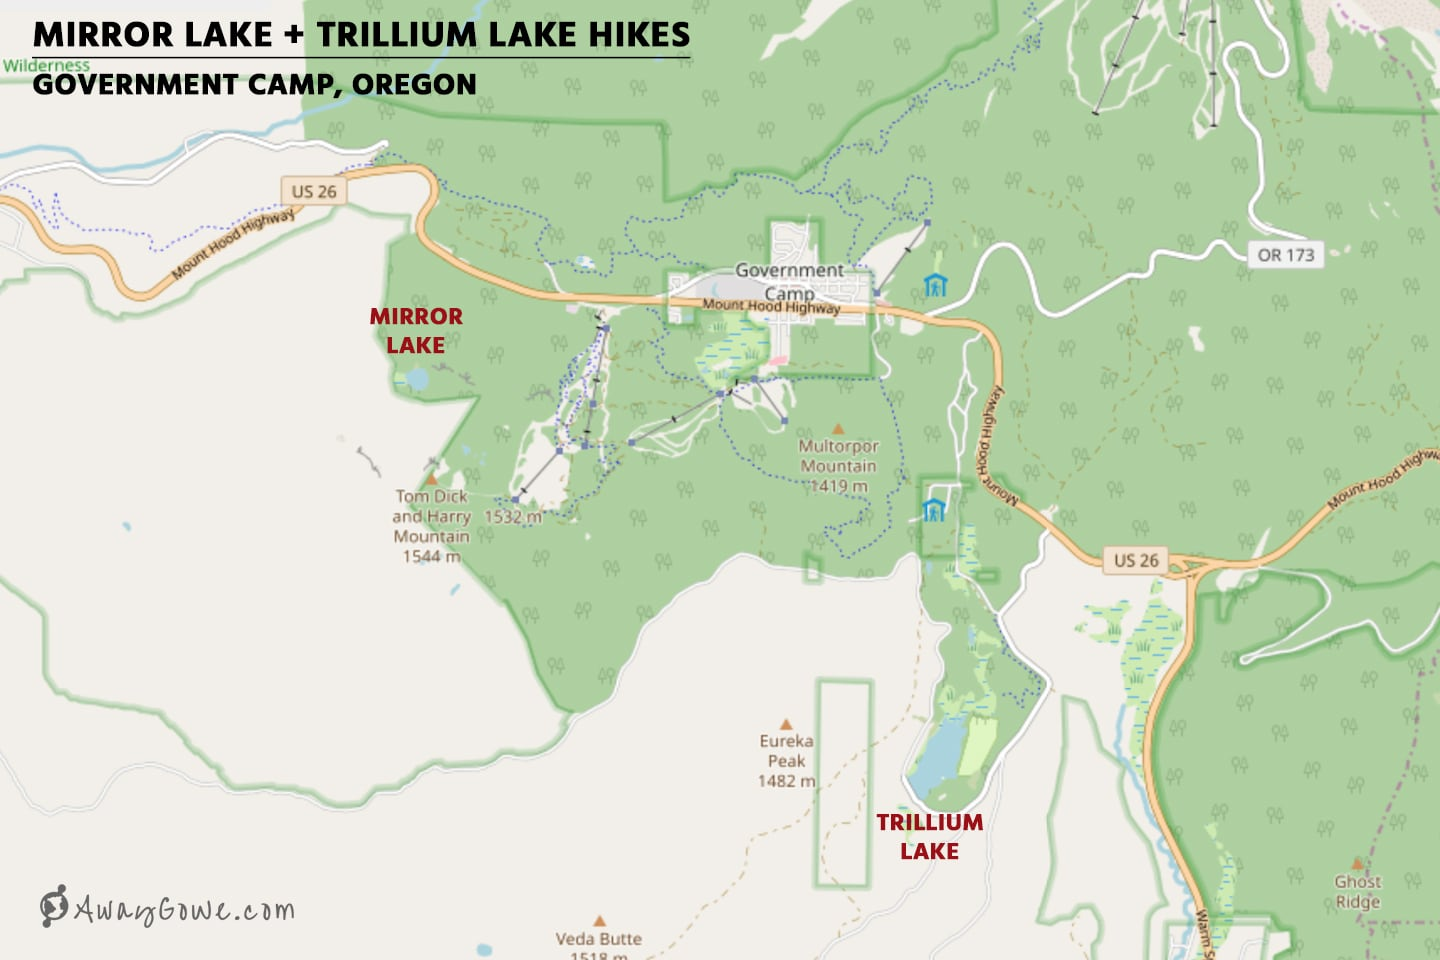 mirror lake trillium lake hike map